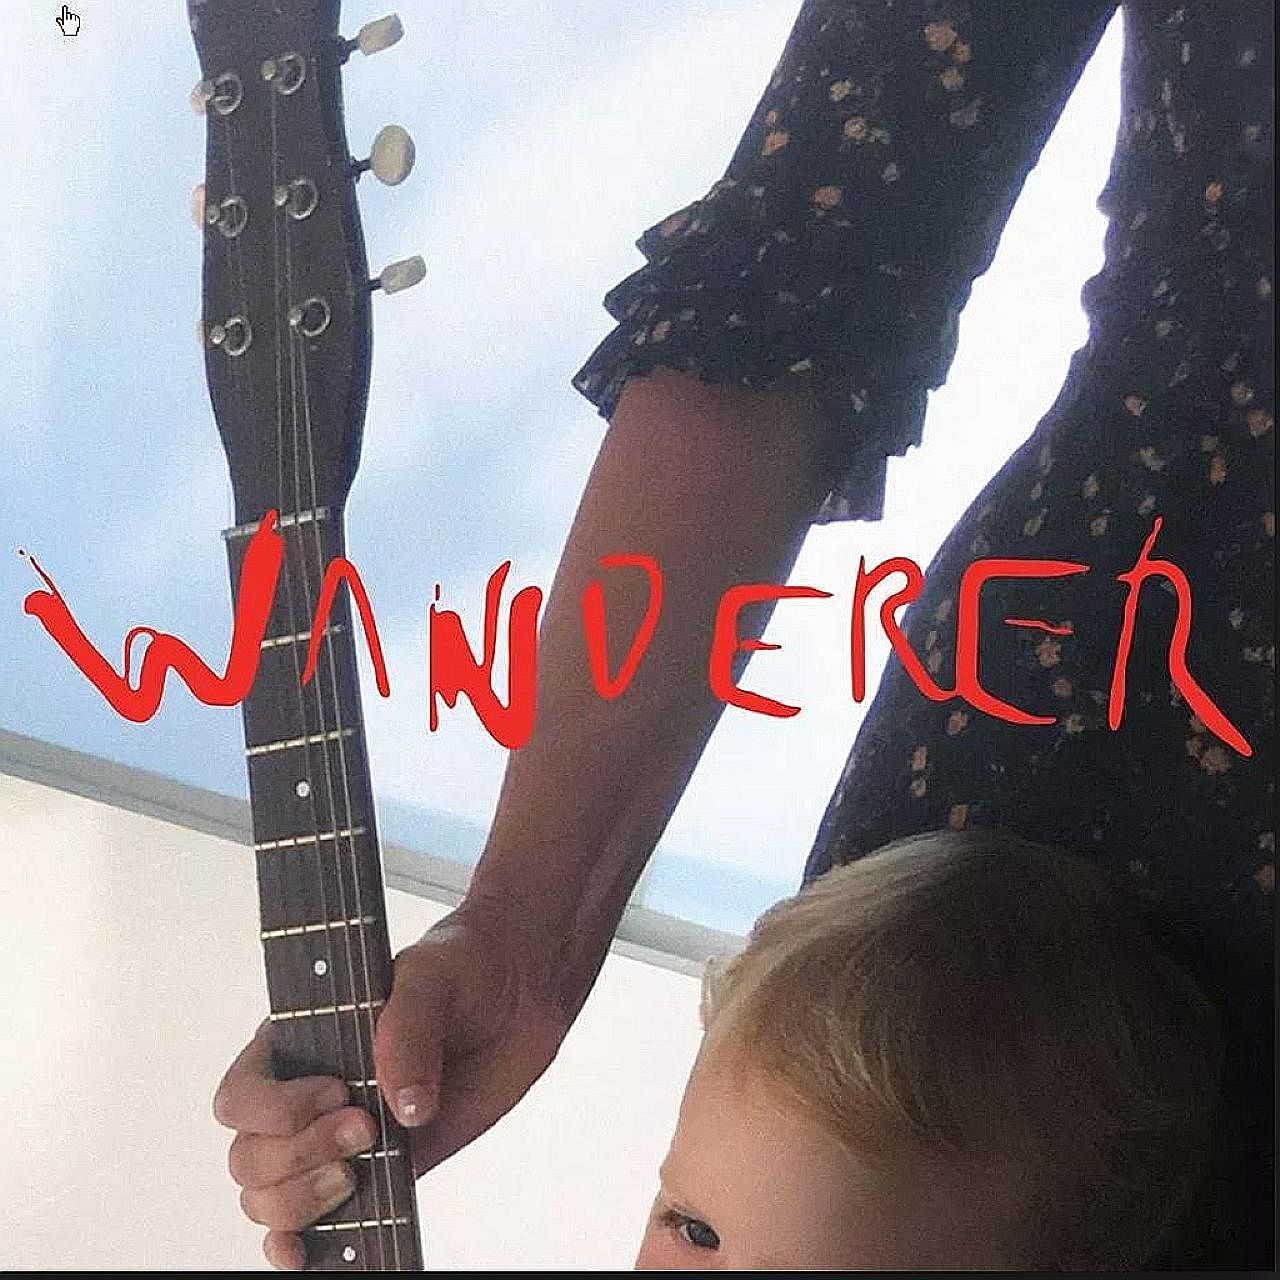 Cat Power's album Wanderer feels both like a clean slate as well as a lucid-eyed accounting of the singer's life so far and American society at large.